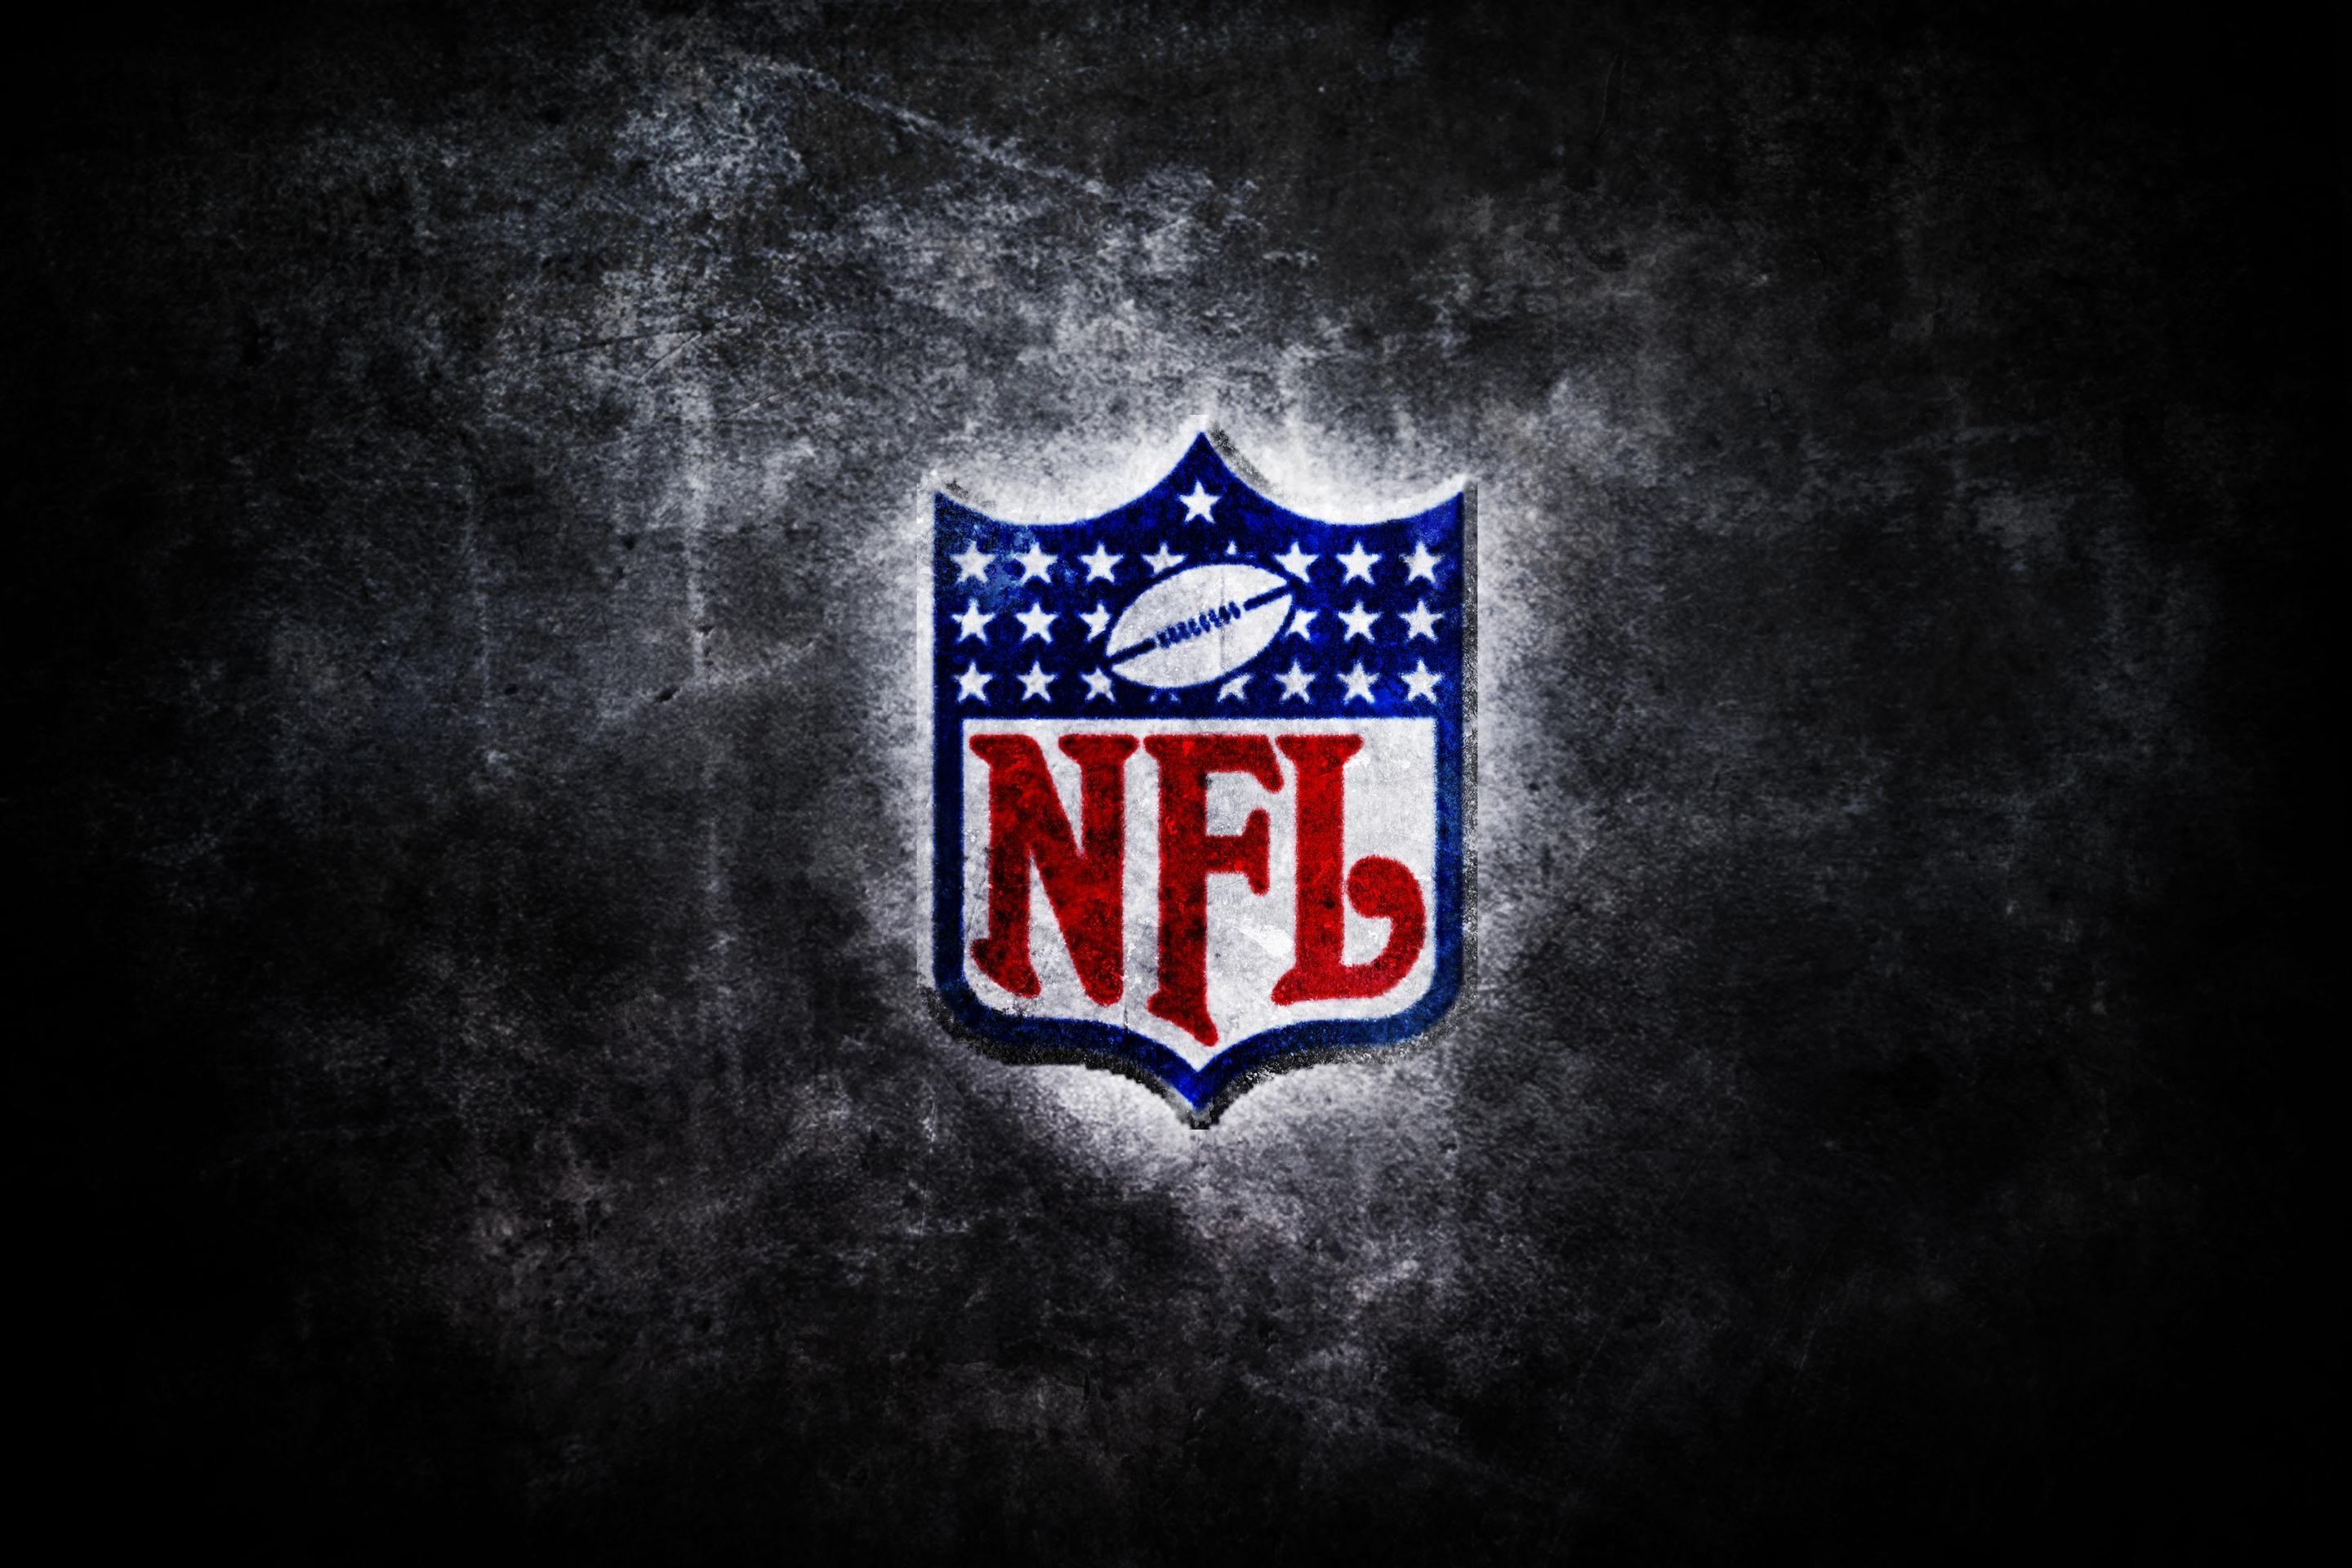 NFL Team Desktop Wallpaper 54 images 2880x1920